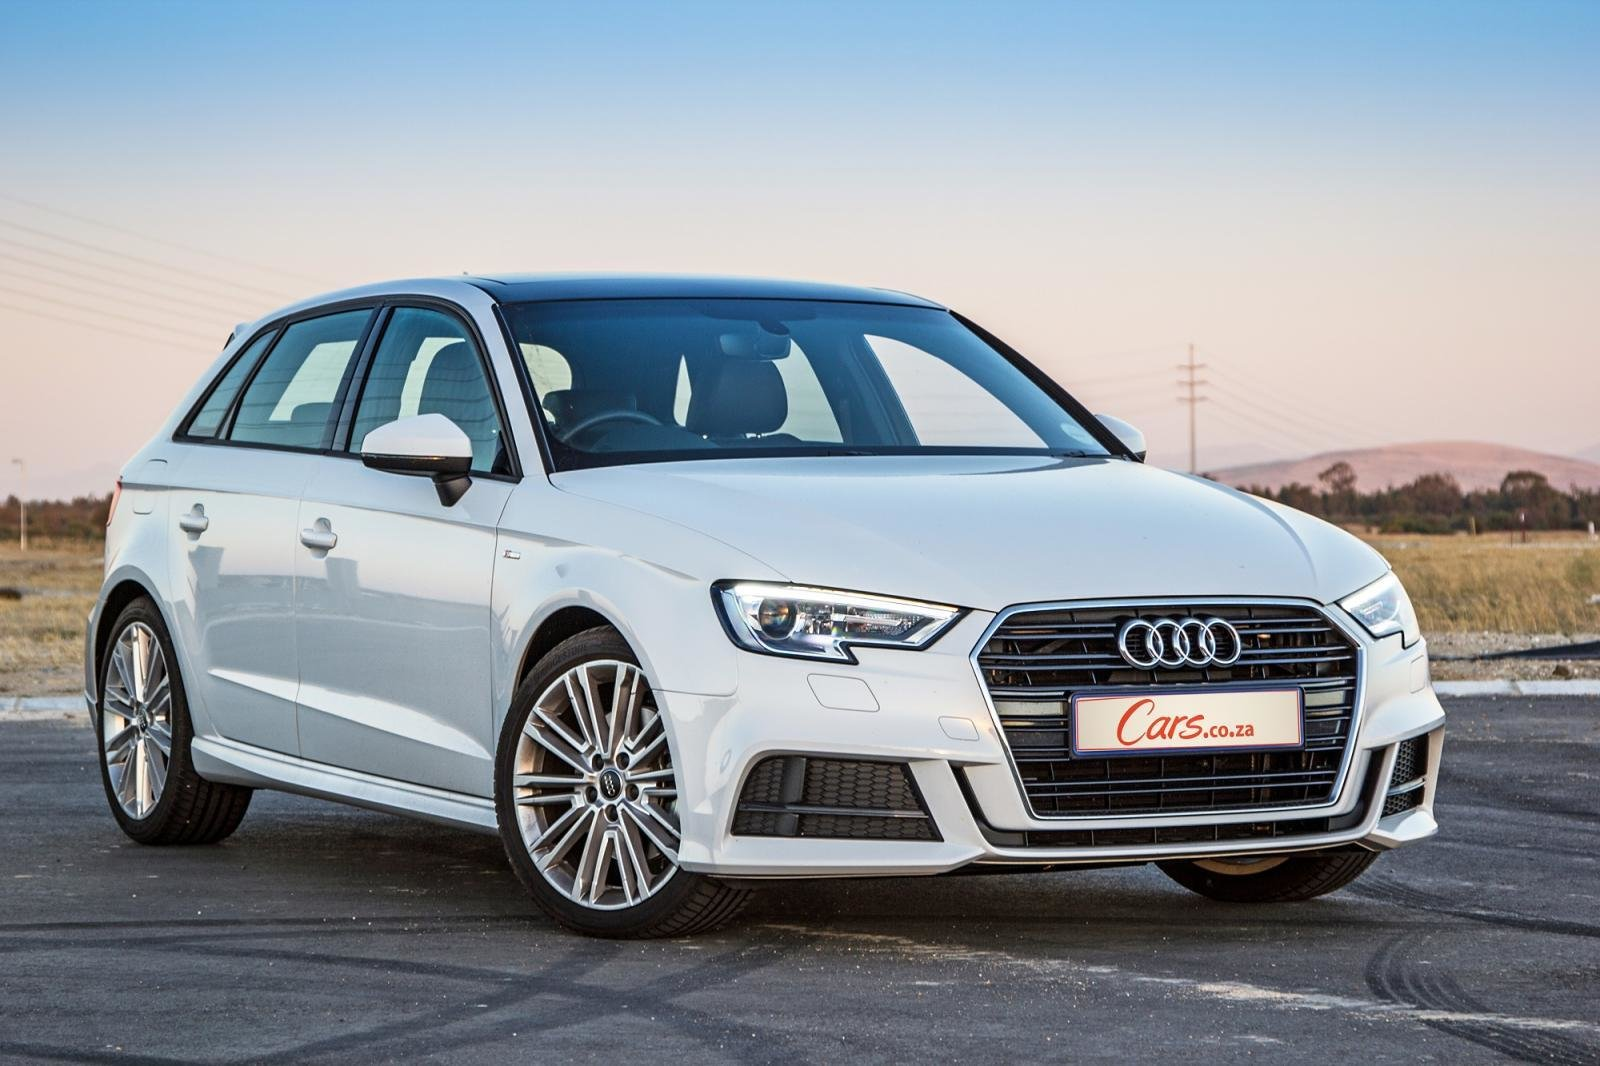 Latest Audi A3 2 0T Sportback Auto 2017 Review Cars Co Za Free Download